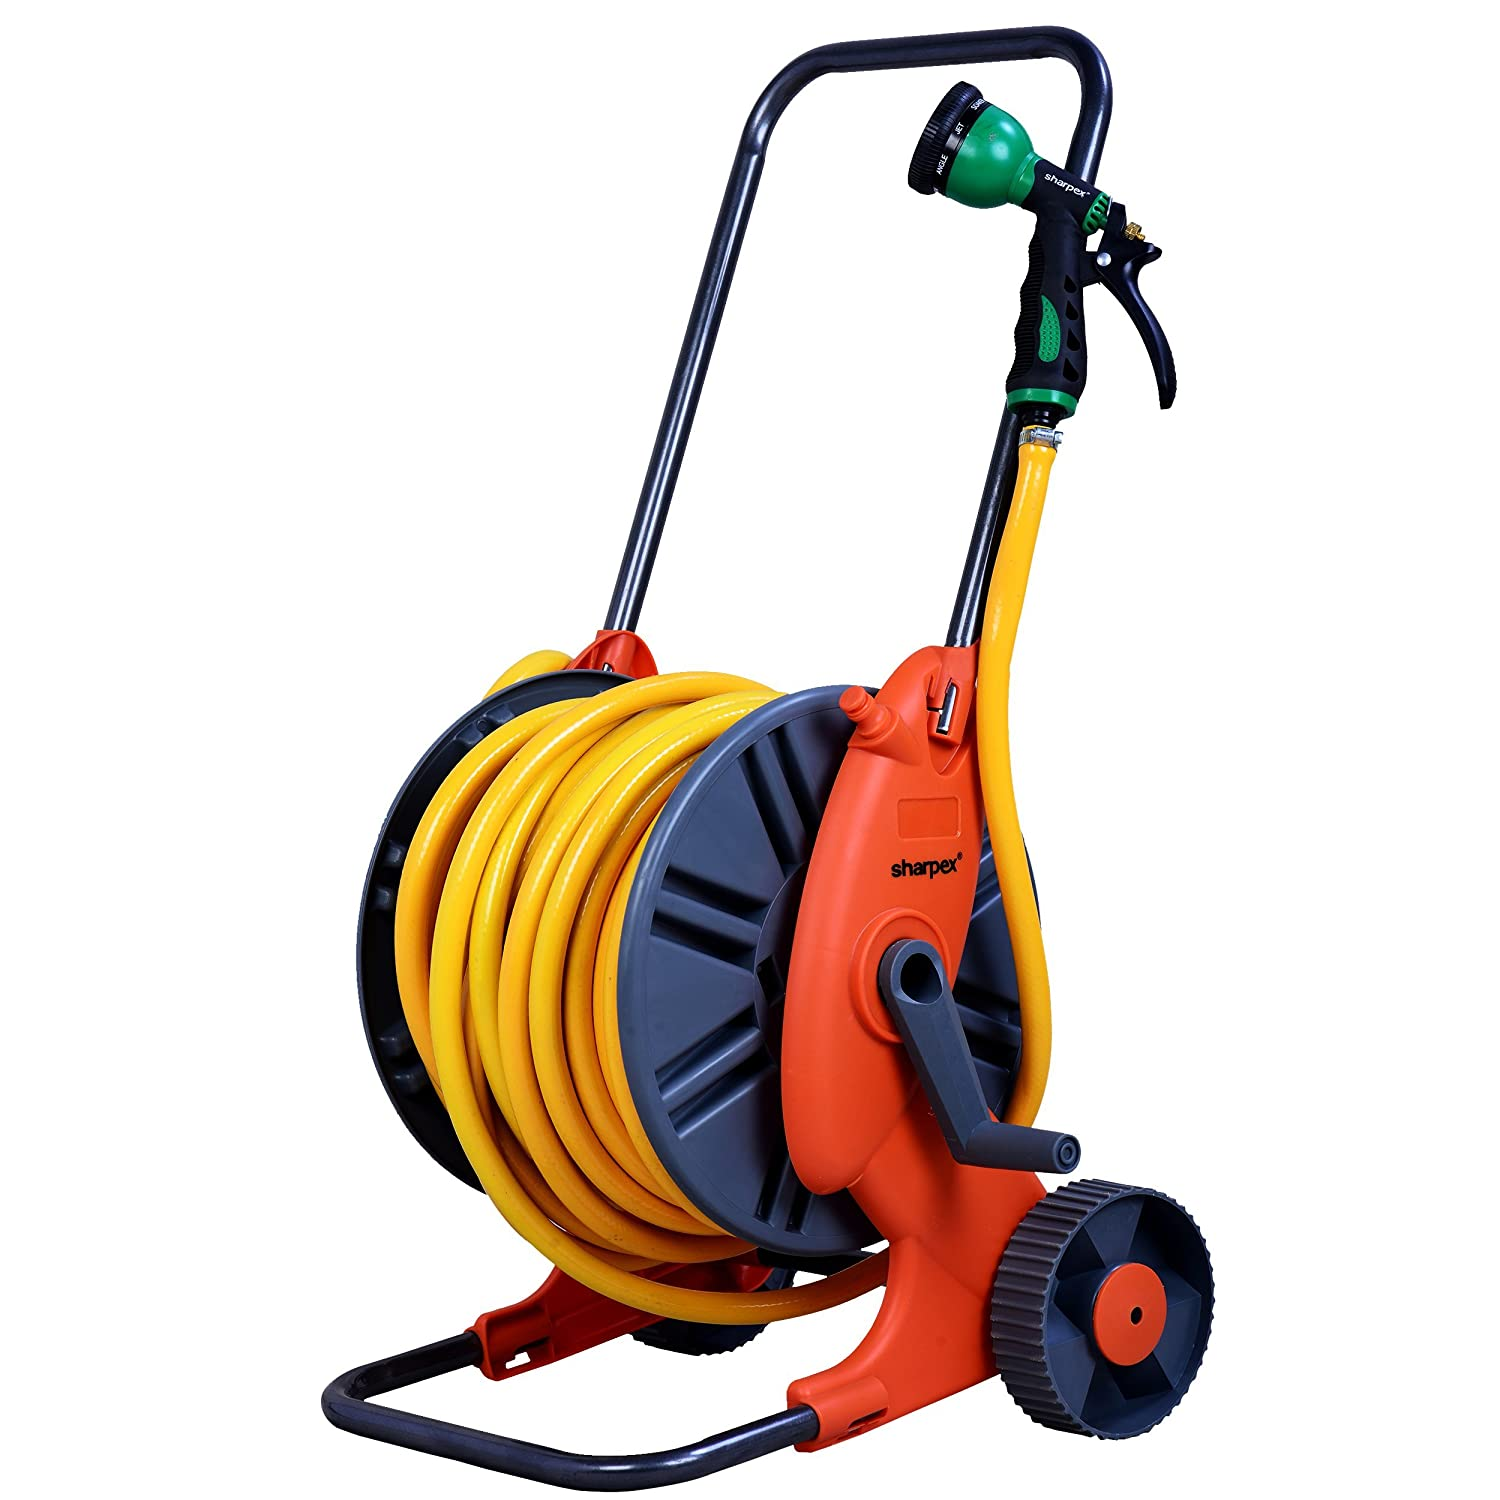 Sharpex Magic Hose Trolley with 30m Hose and 8 Pattern Hose